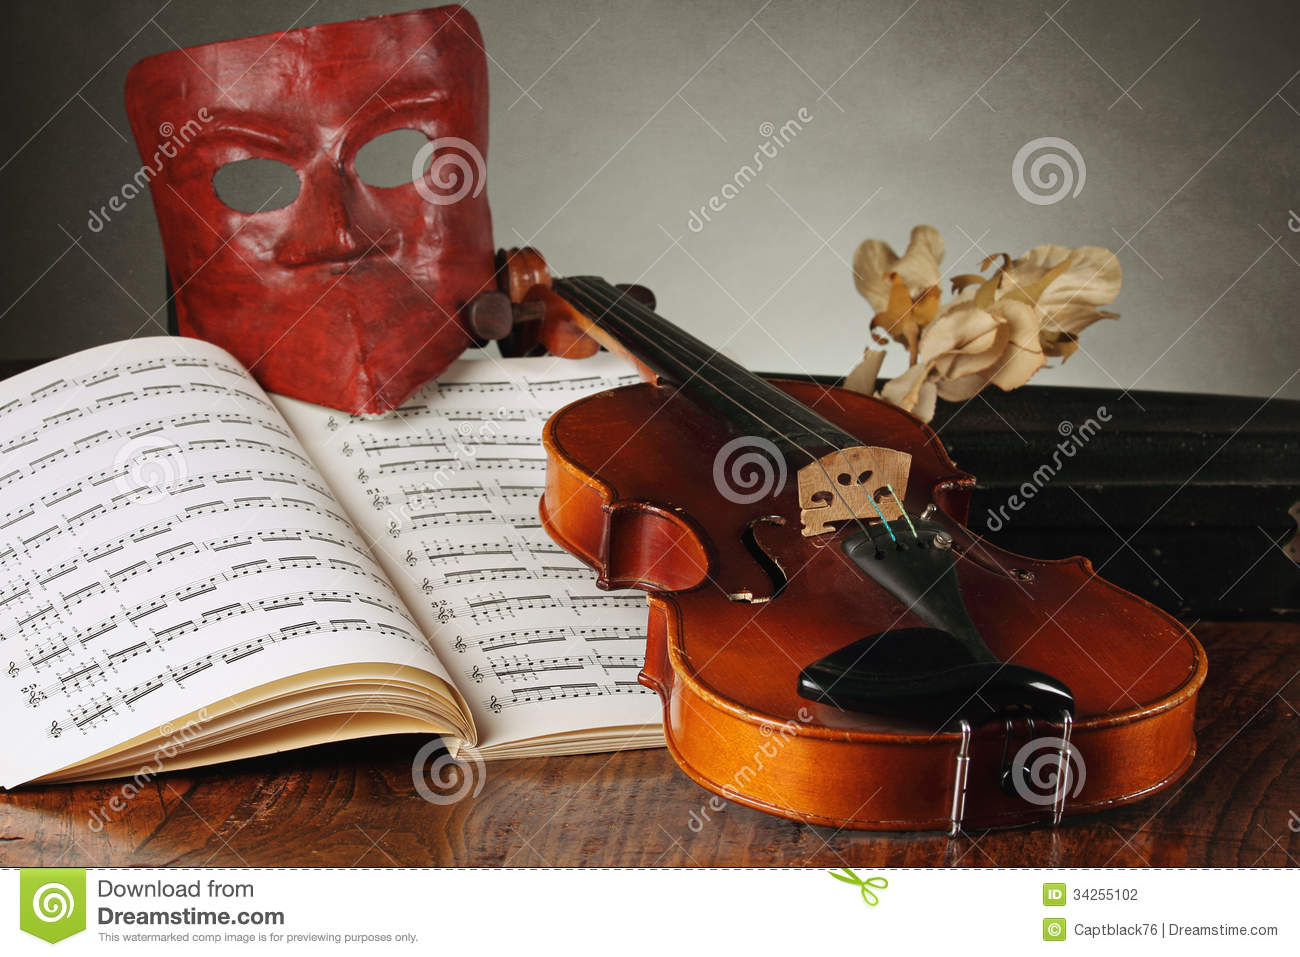 Venetian Mask With Old Violin Stock Photo - Image of venice